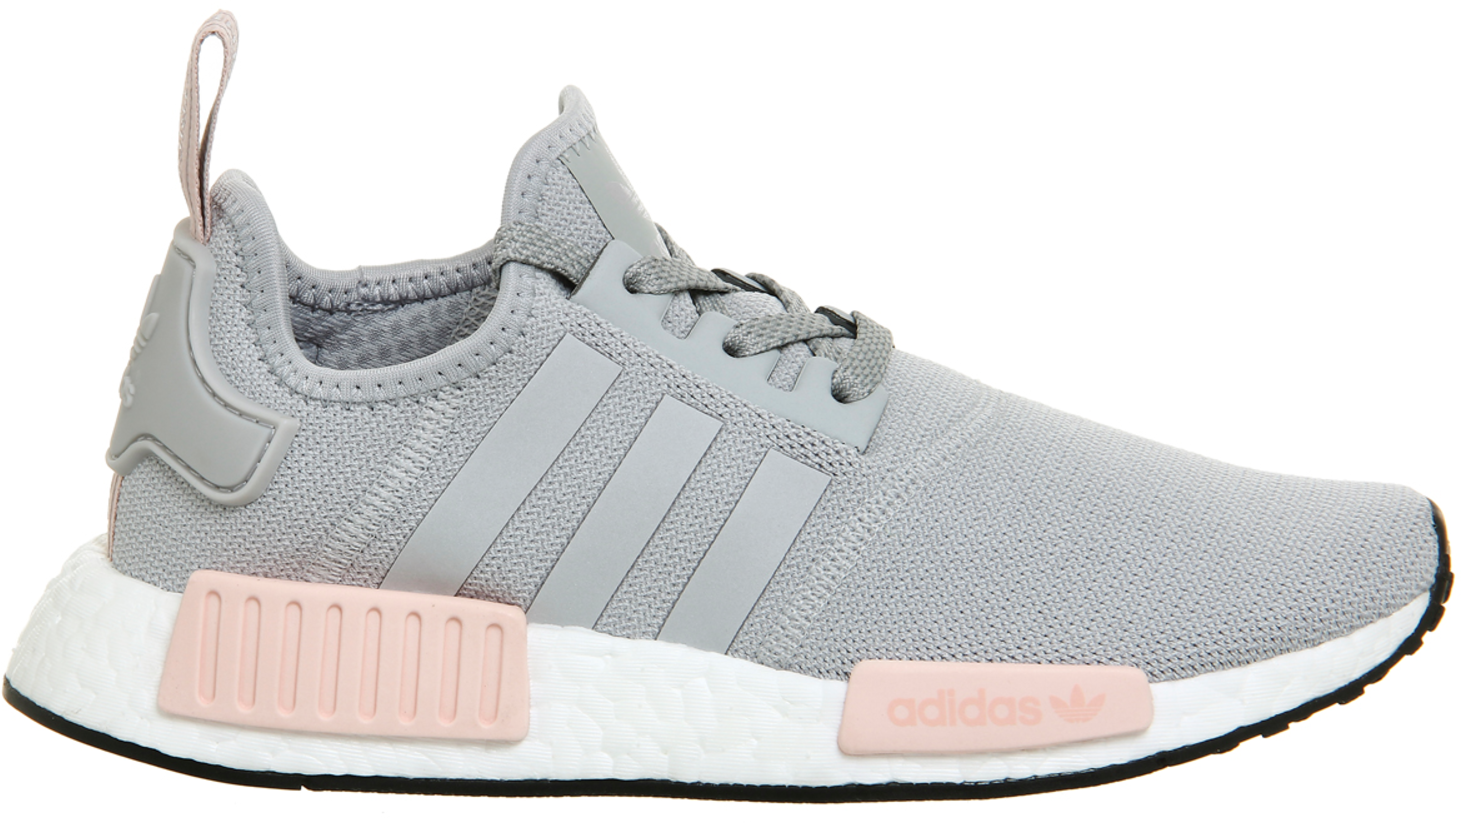 adidas NMD R1 Clear Onix Vapour Pink (W)